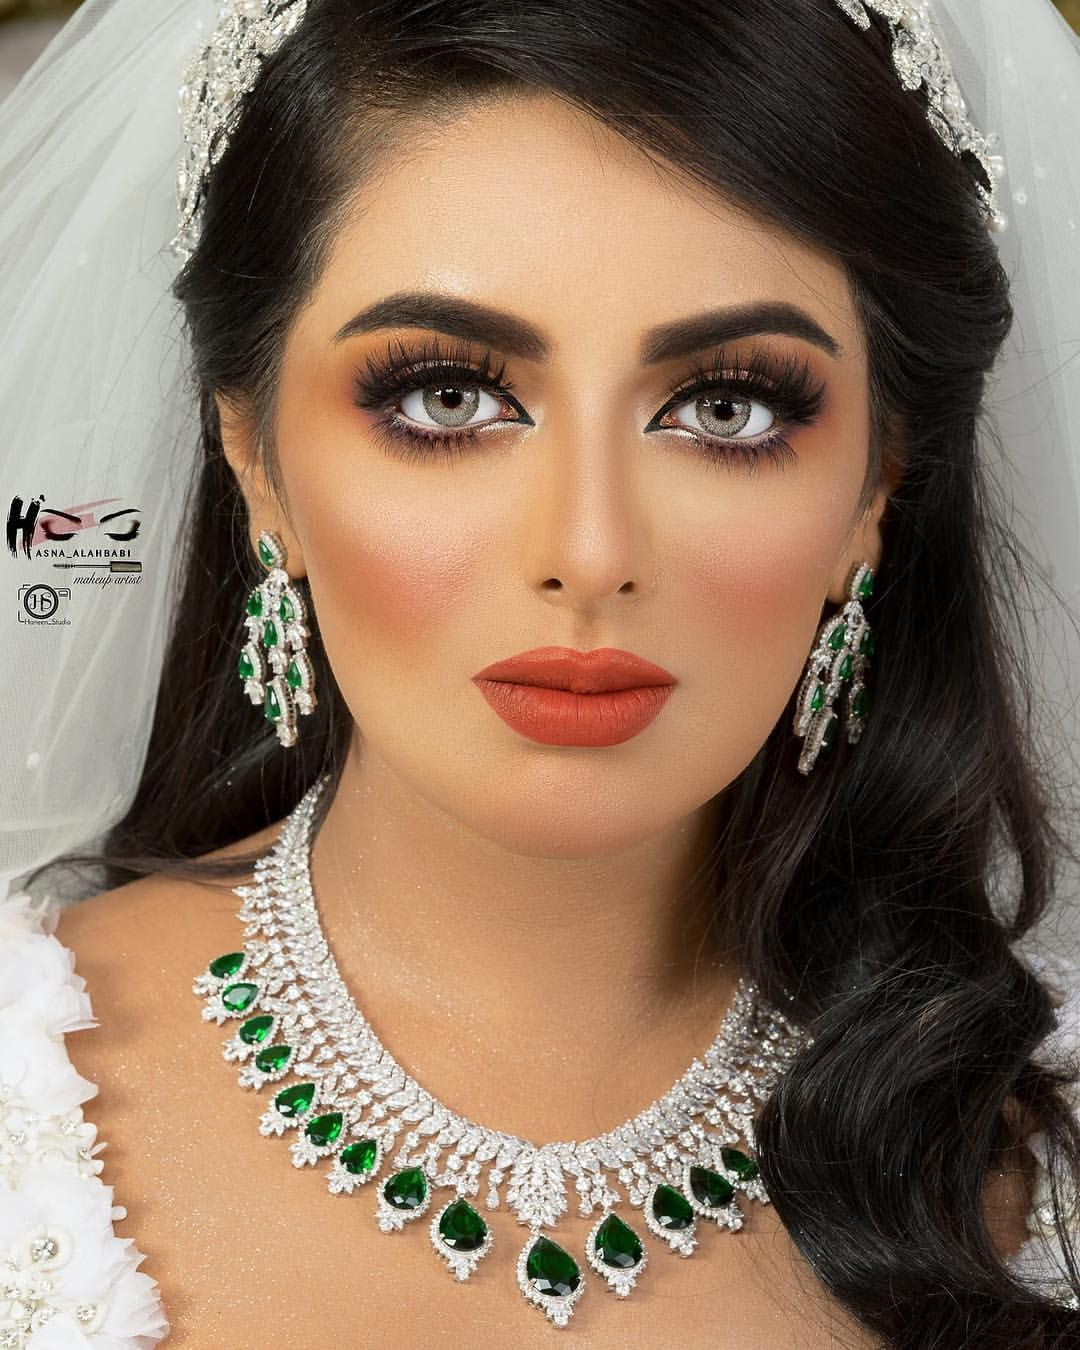 Pin By Nskhaty On ميك اب Simple Makeup Makeup Store Makeup